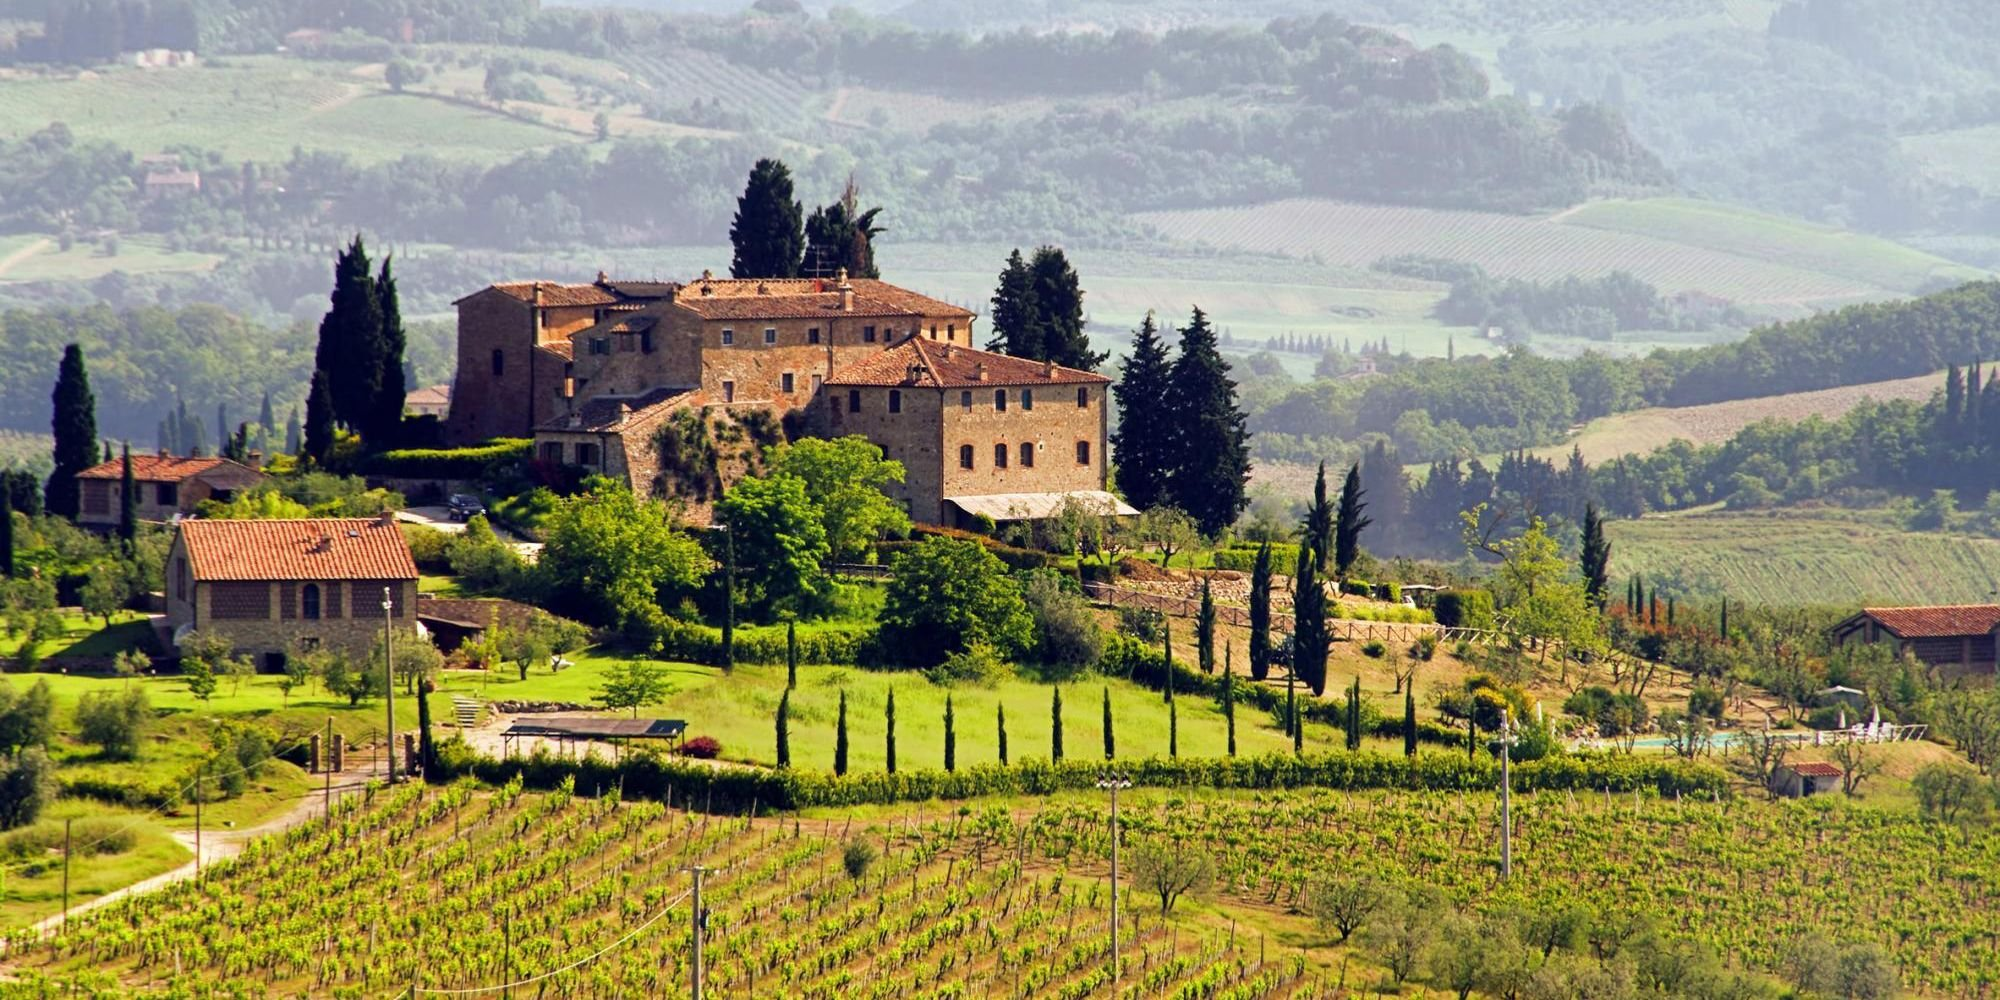 10 Italian Wineries That Every Would-Be Connoisseur Should Visit